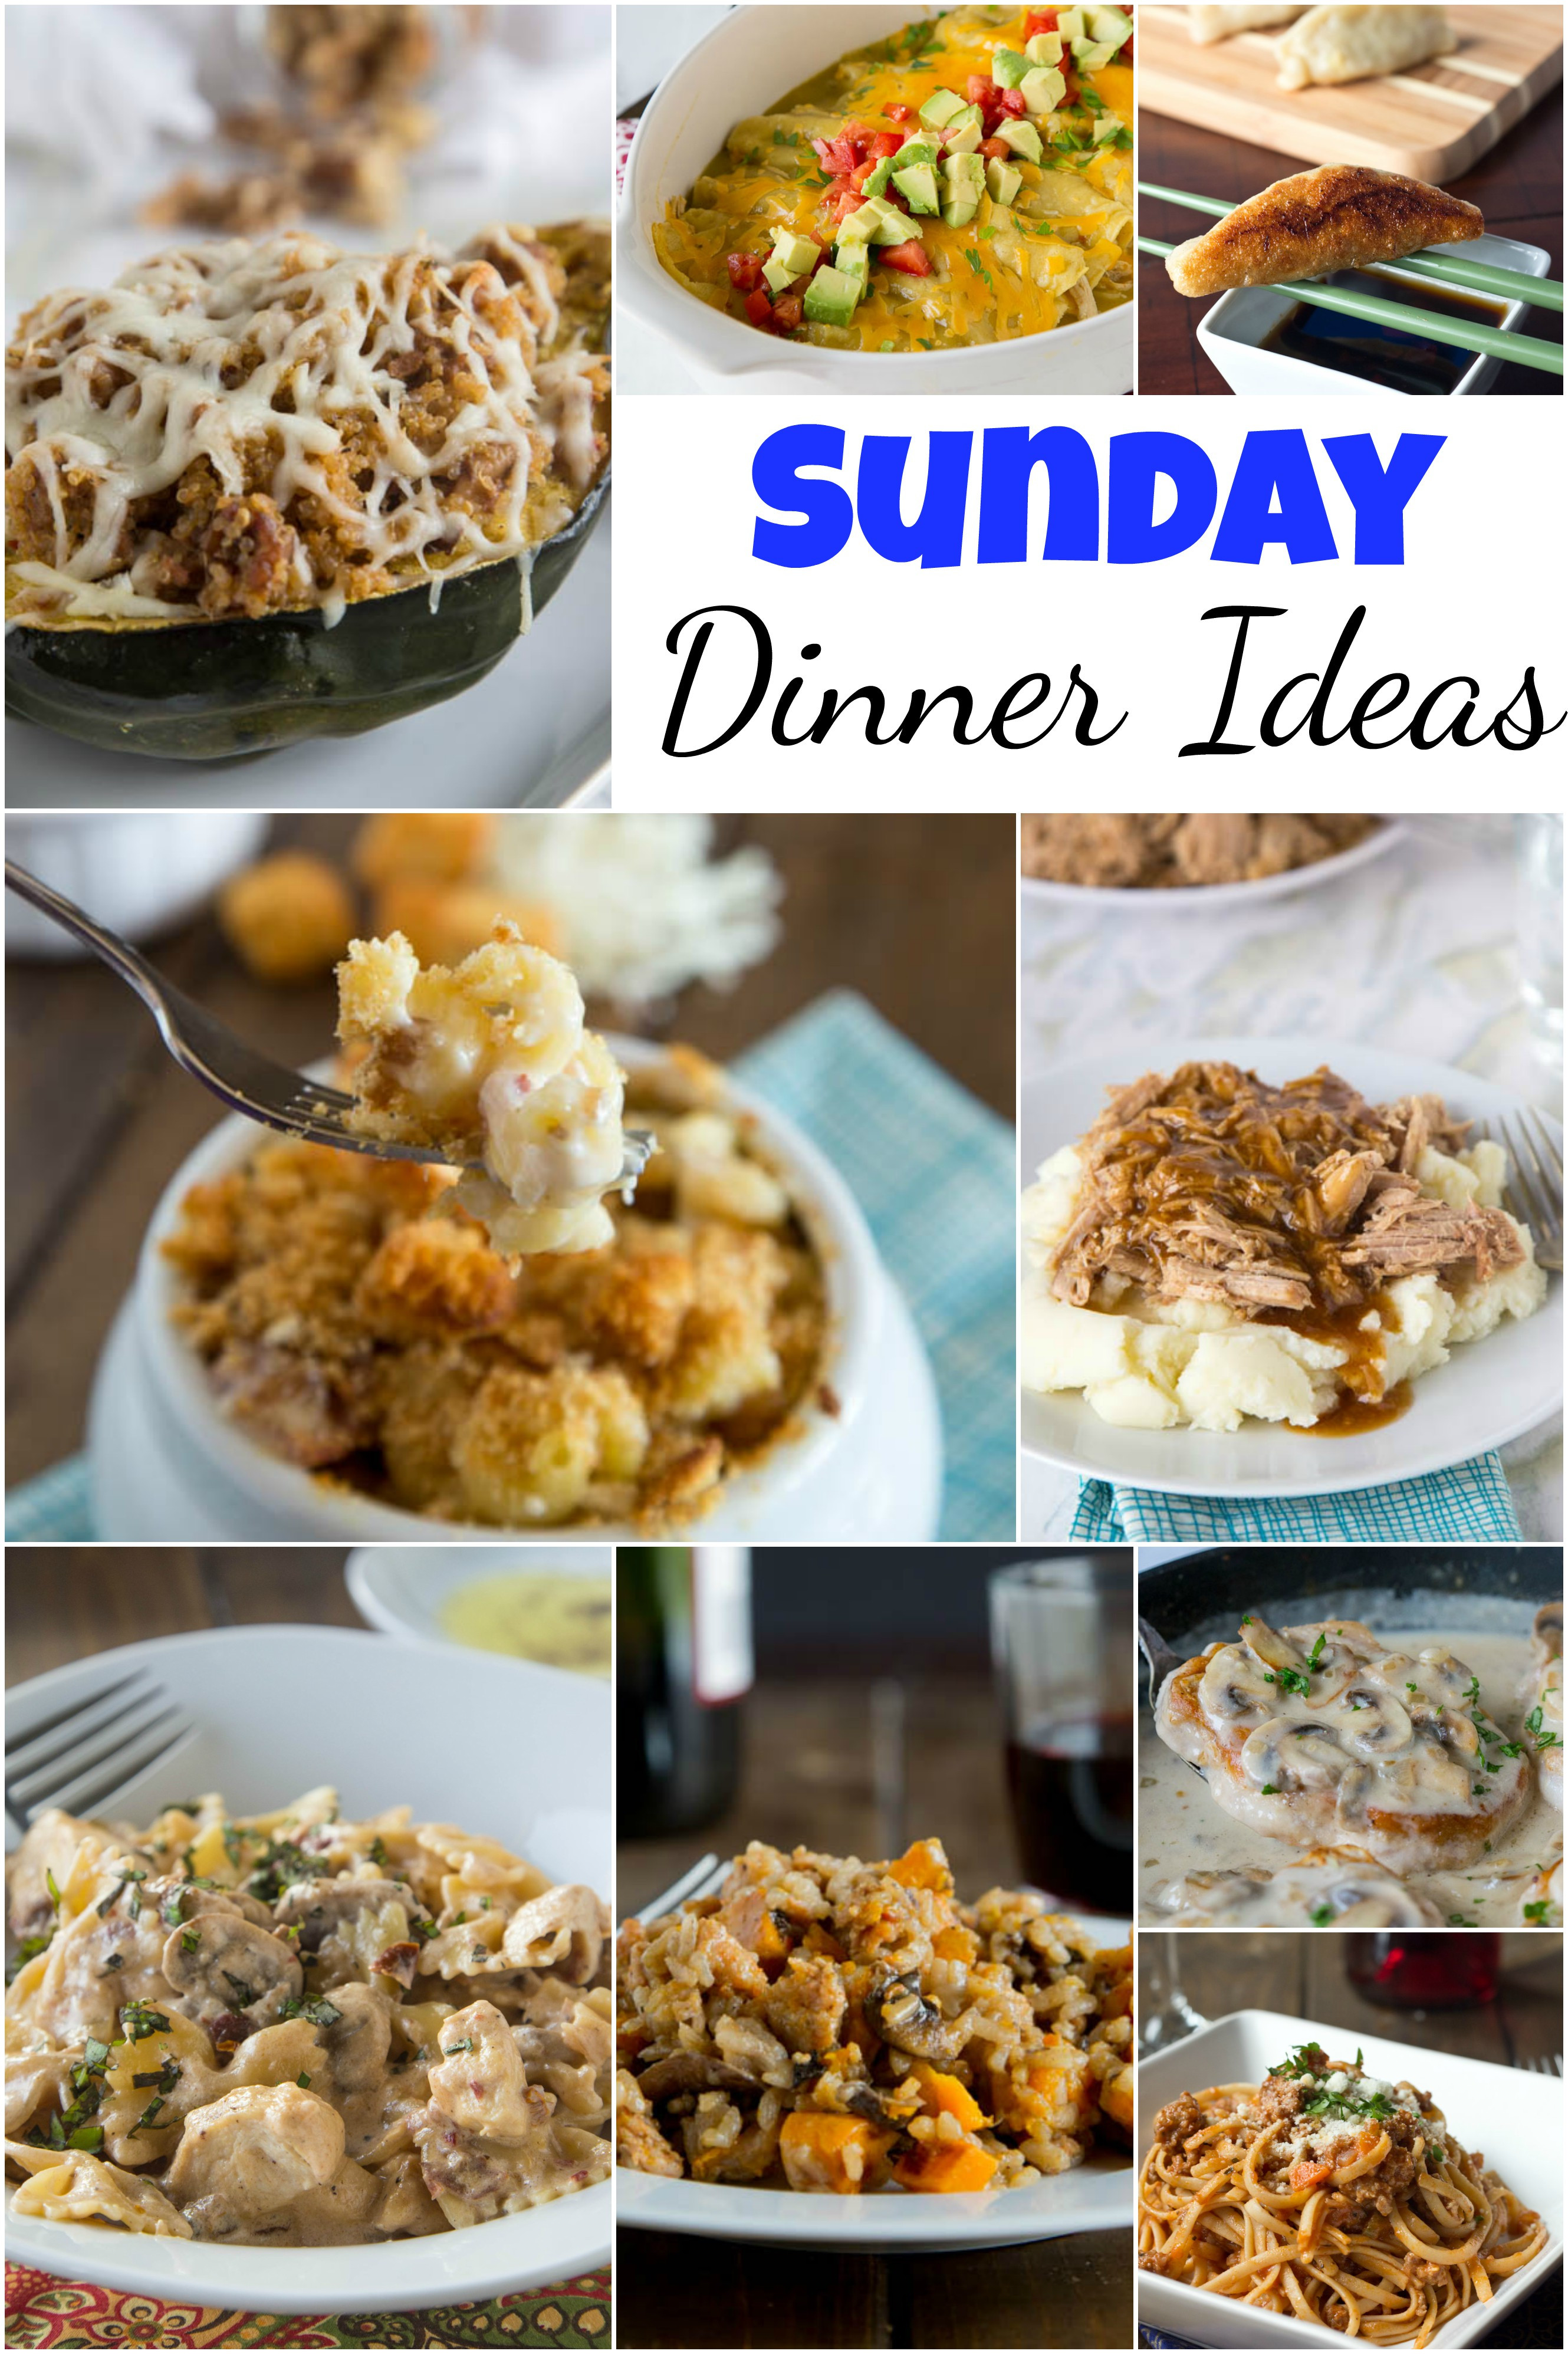 Sunday Dinner Ideas  Sunday Dinner Ideas Dinners Dishes and Desserts